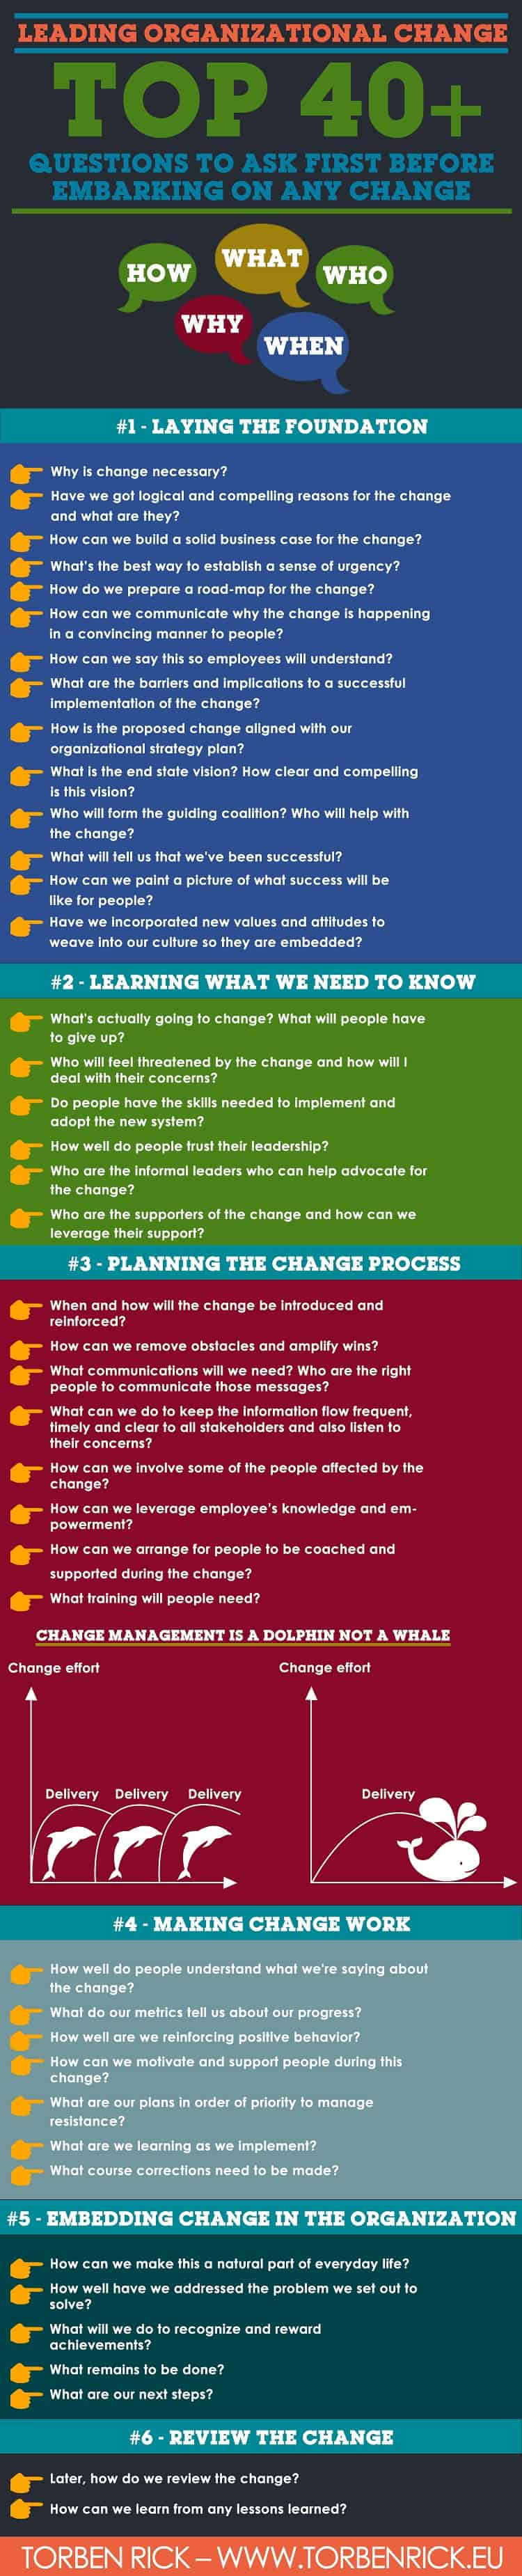 Start with this checklist for implementing change management. Leading organizational change - Top 40+ questions to ask before embarking on any change